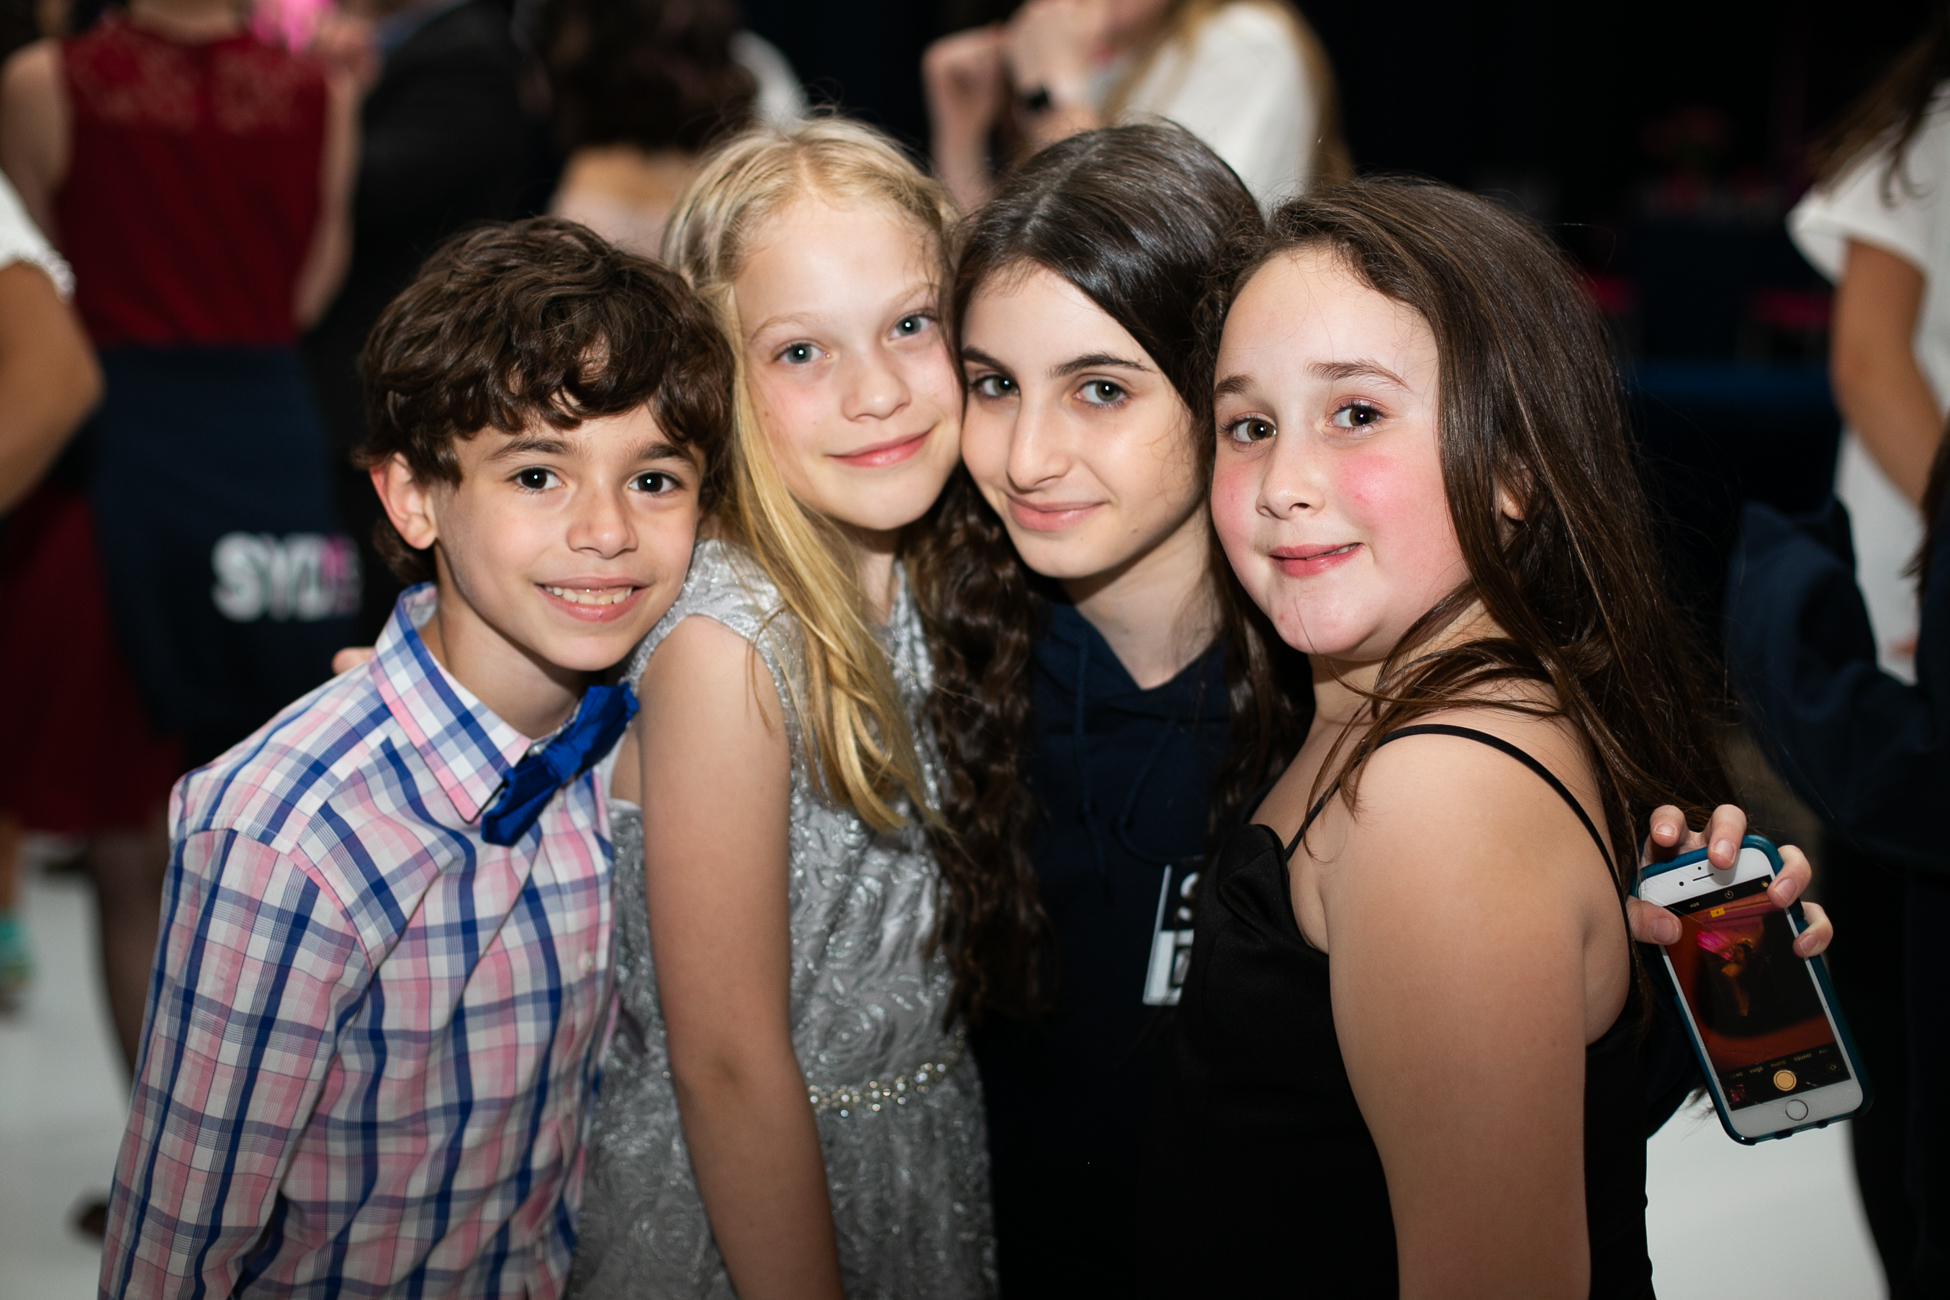 Sydney's Bat Mitzvah at Sheraton Society Hill by Avi Loren Fox LLC - Sneak Peak-89.jpg